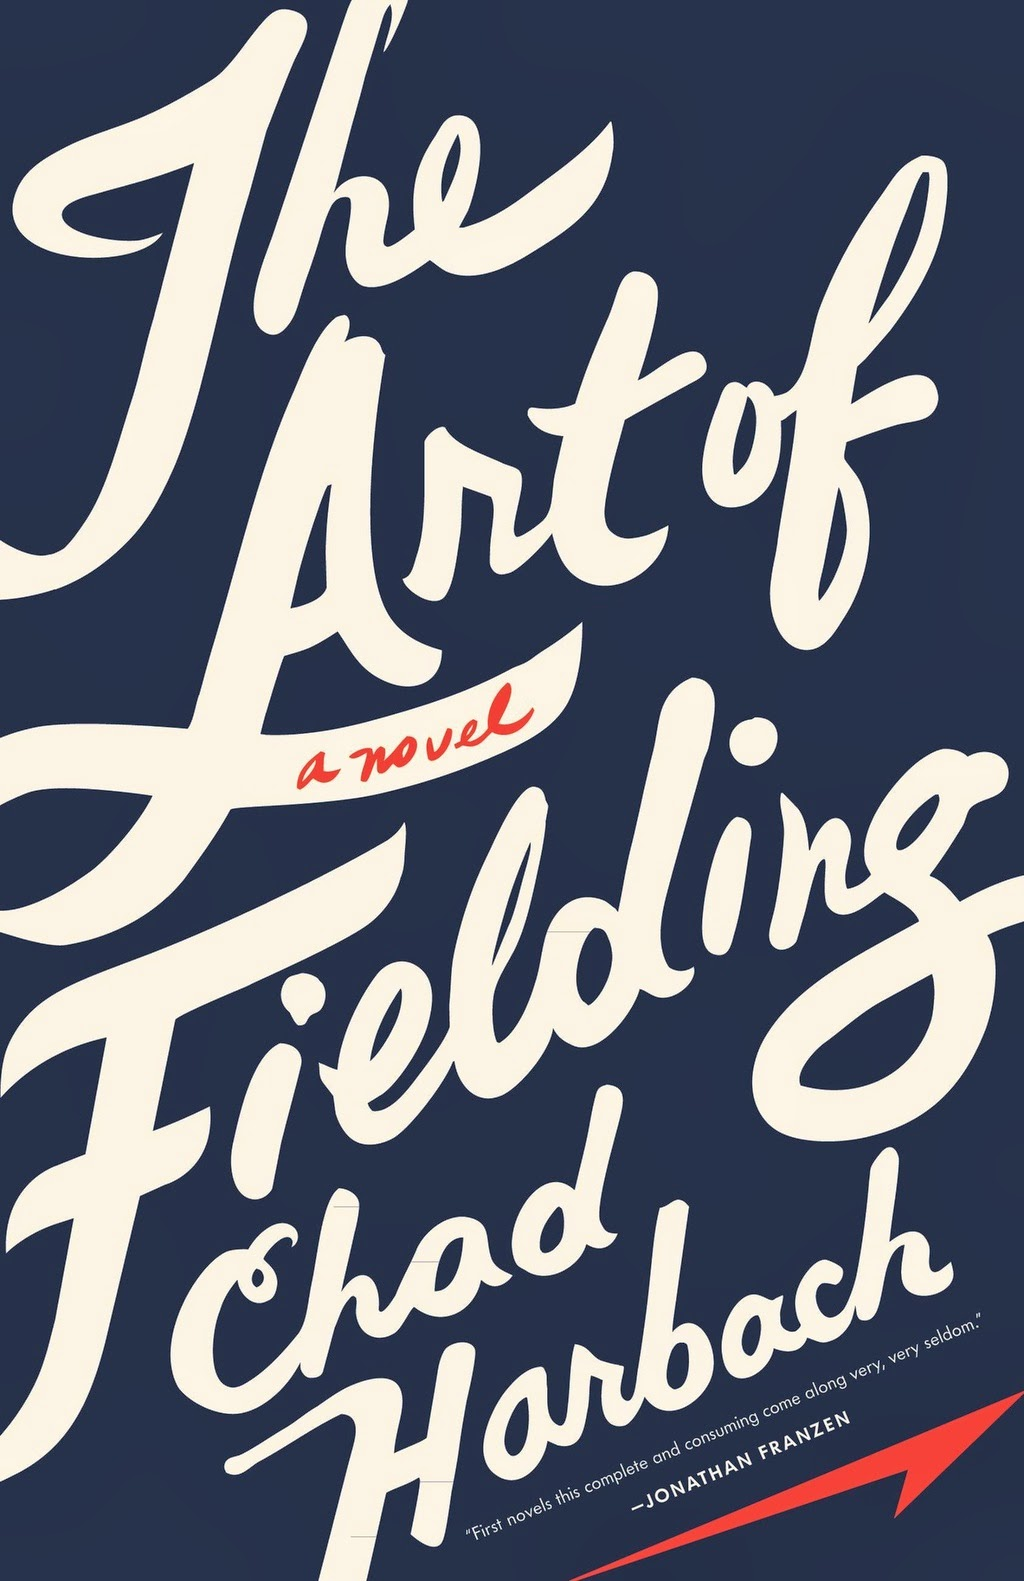 http://discover.halifaxpubliclibraries.ca/?q=title:%22art%20of%20fielding%22